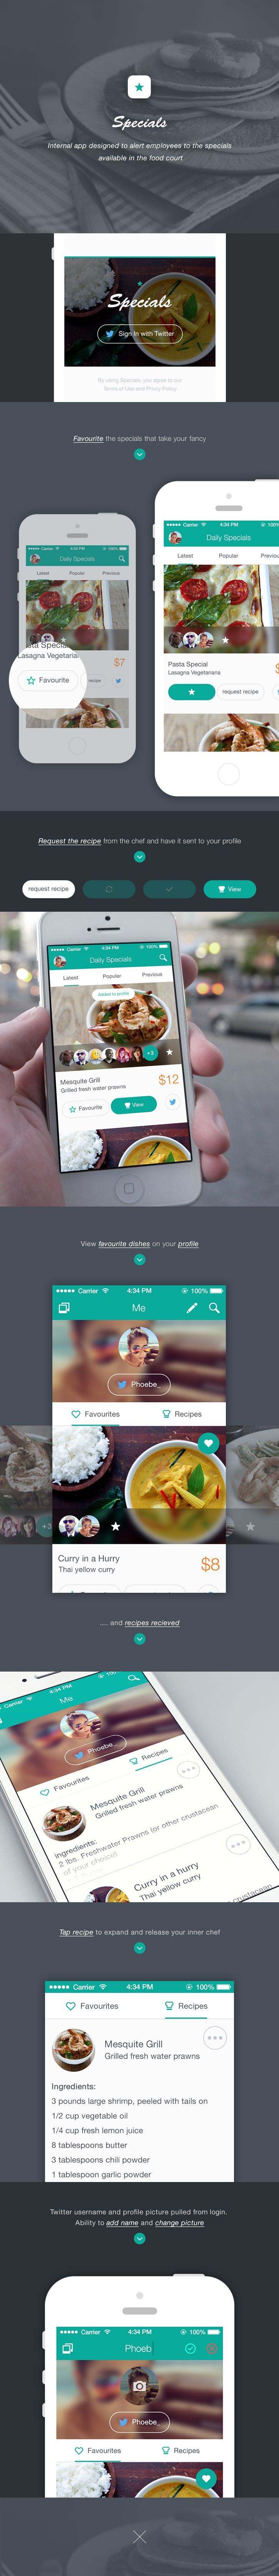 Daily Specials app project by Ben Dunn